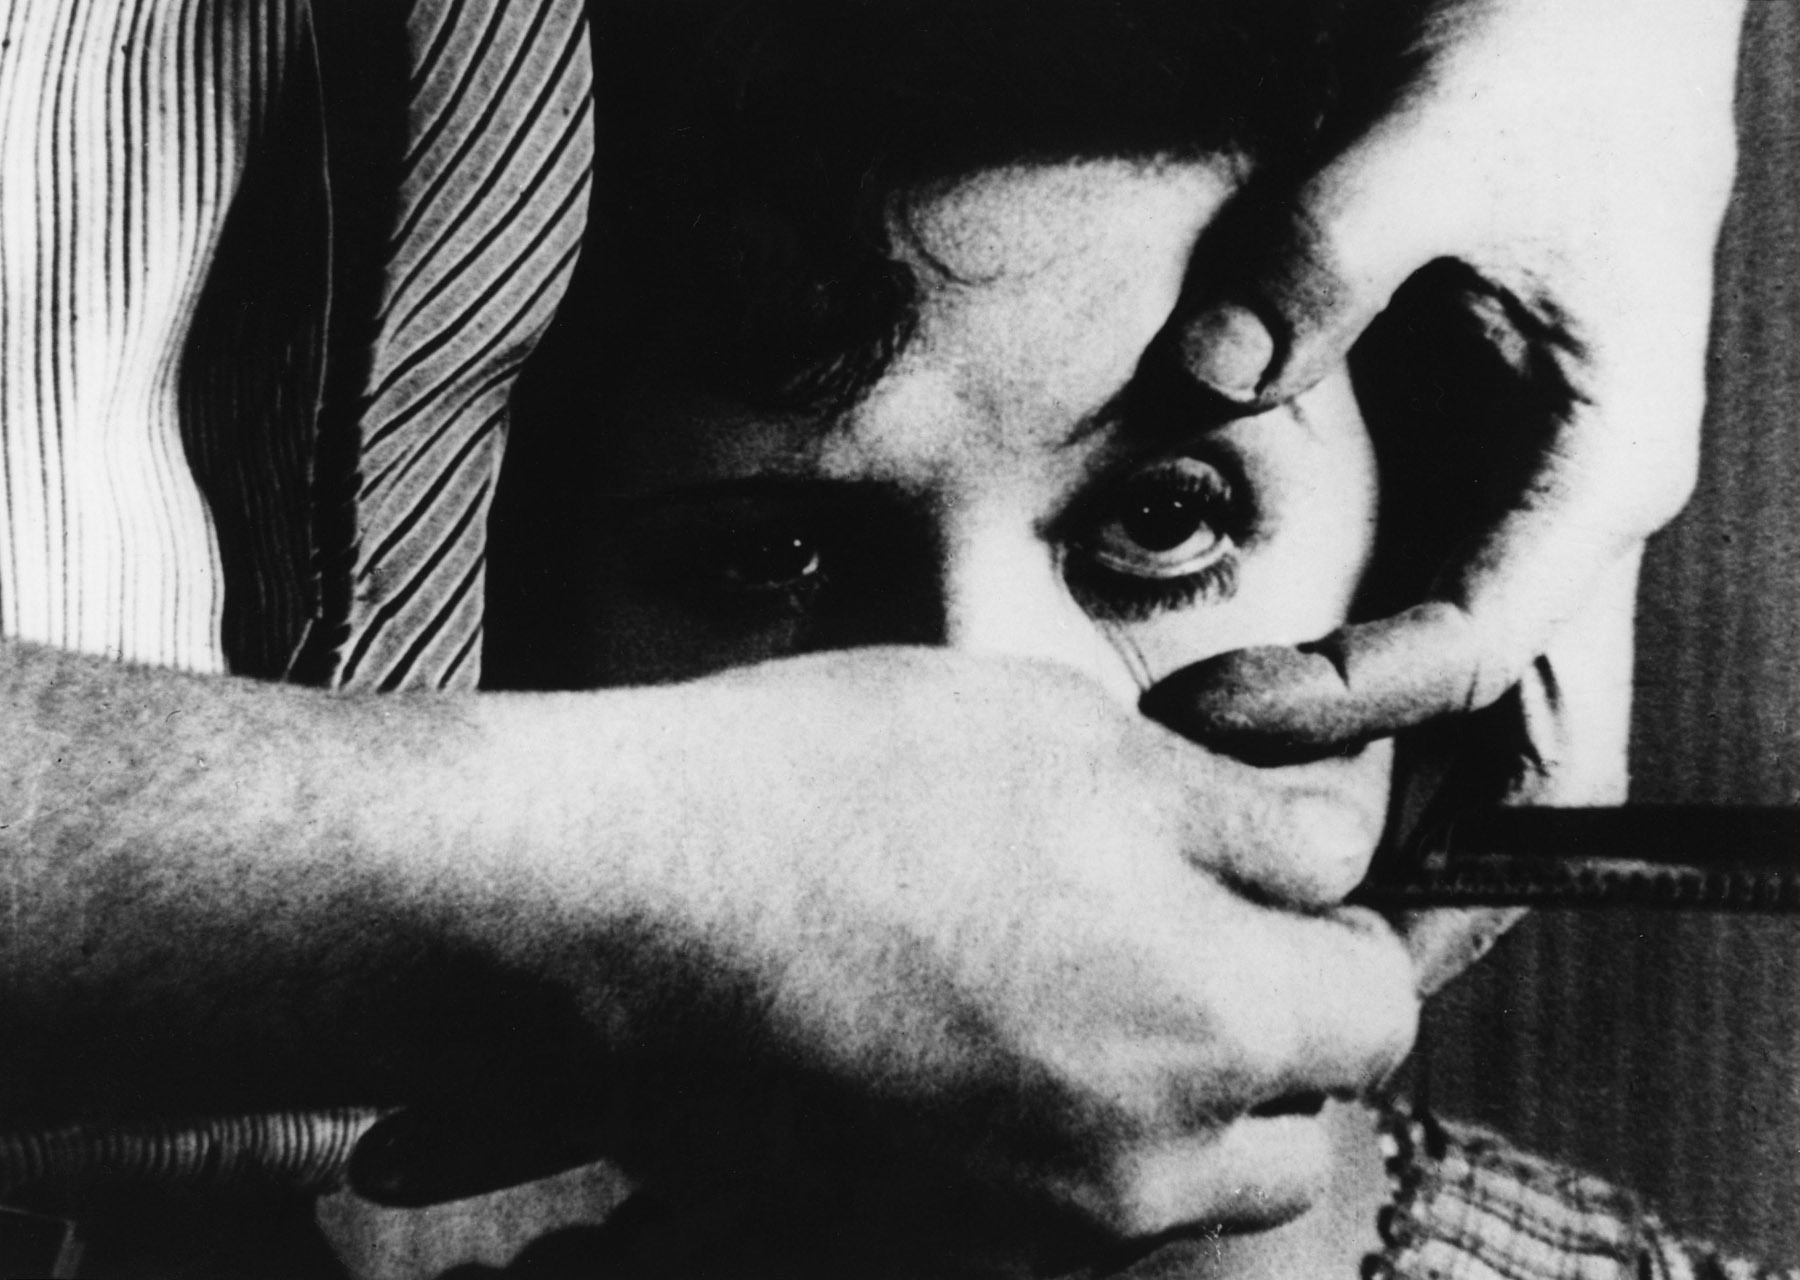 An image from Luis Buñuel and Salvador Dalí's Un Chien Andalou (1929).